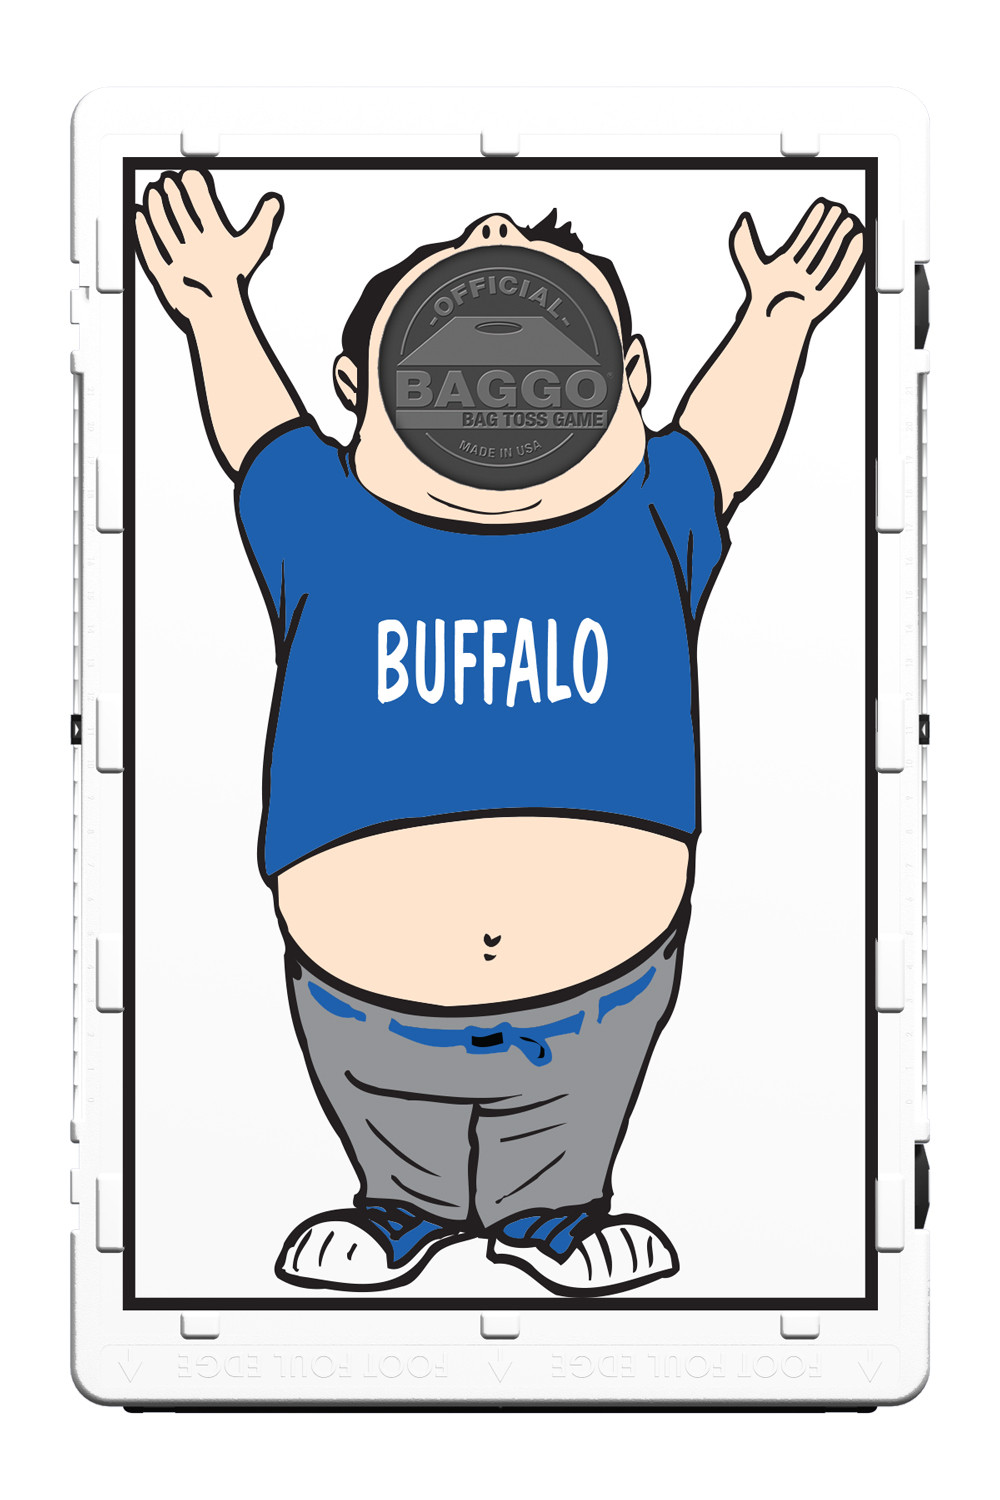 Buffalo Baggo Fan Screens (only) by Baggo